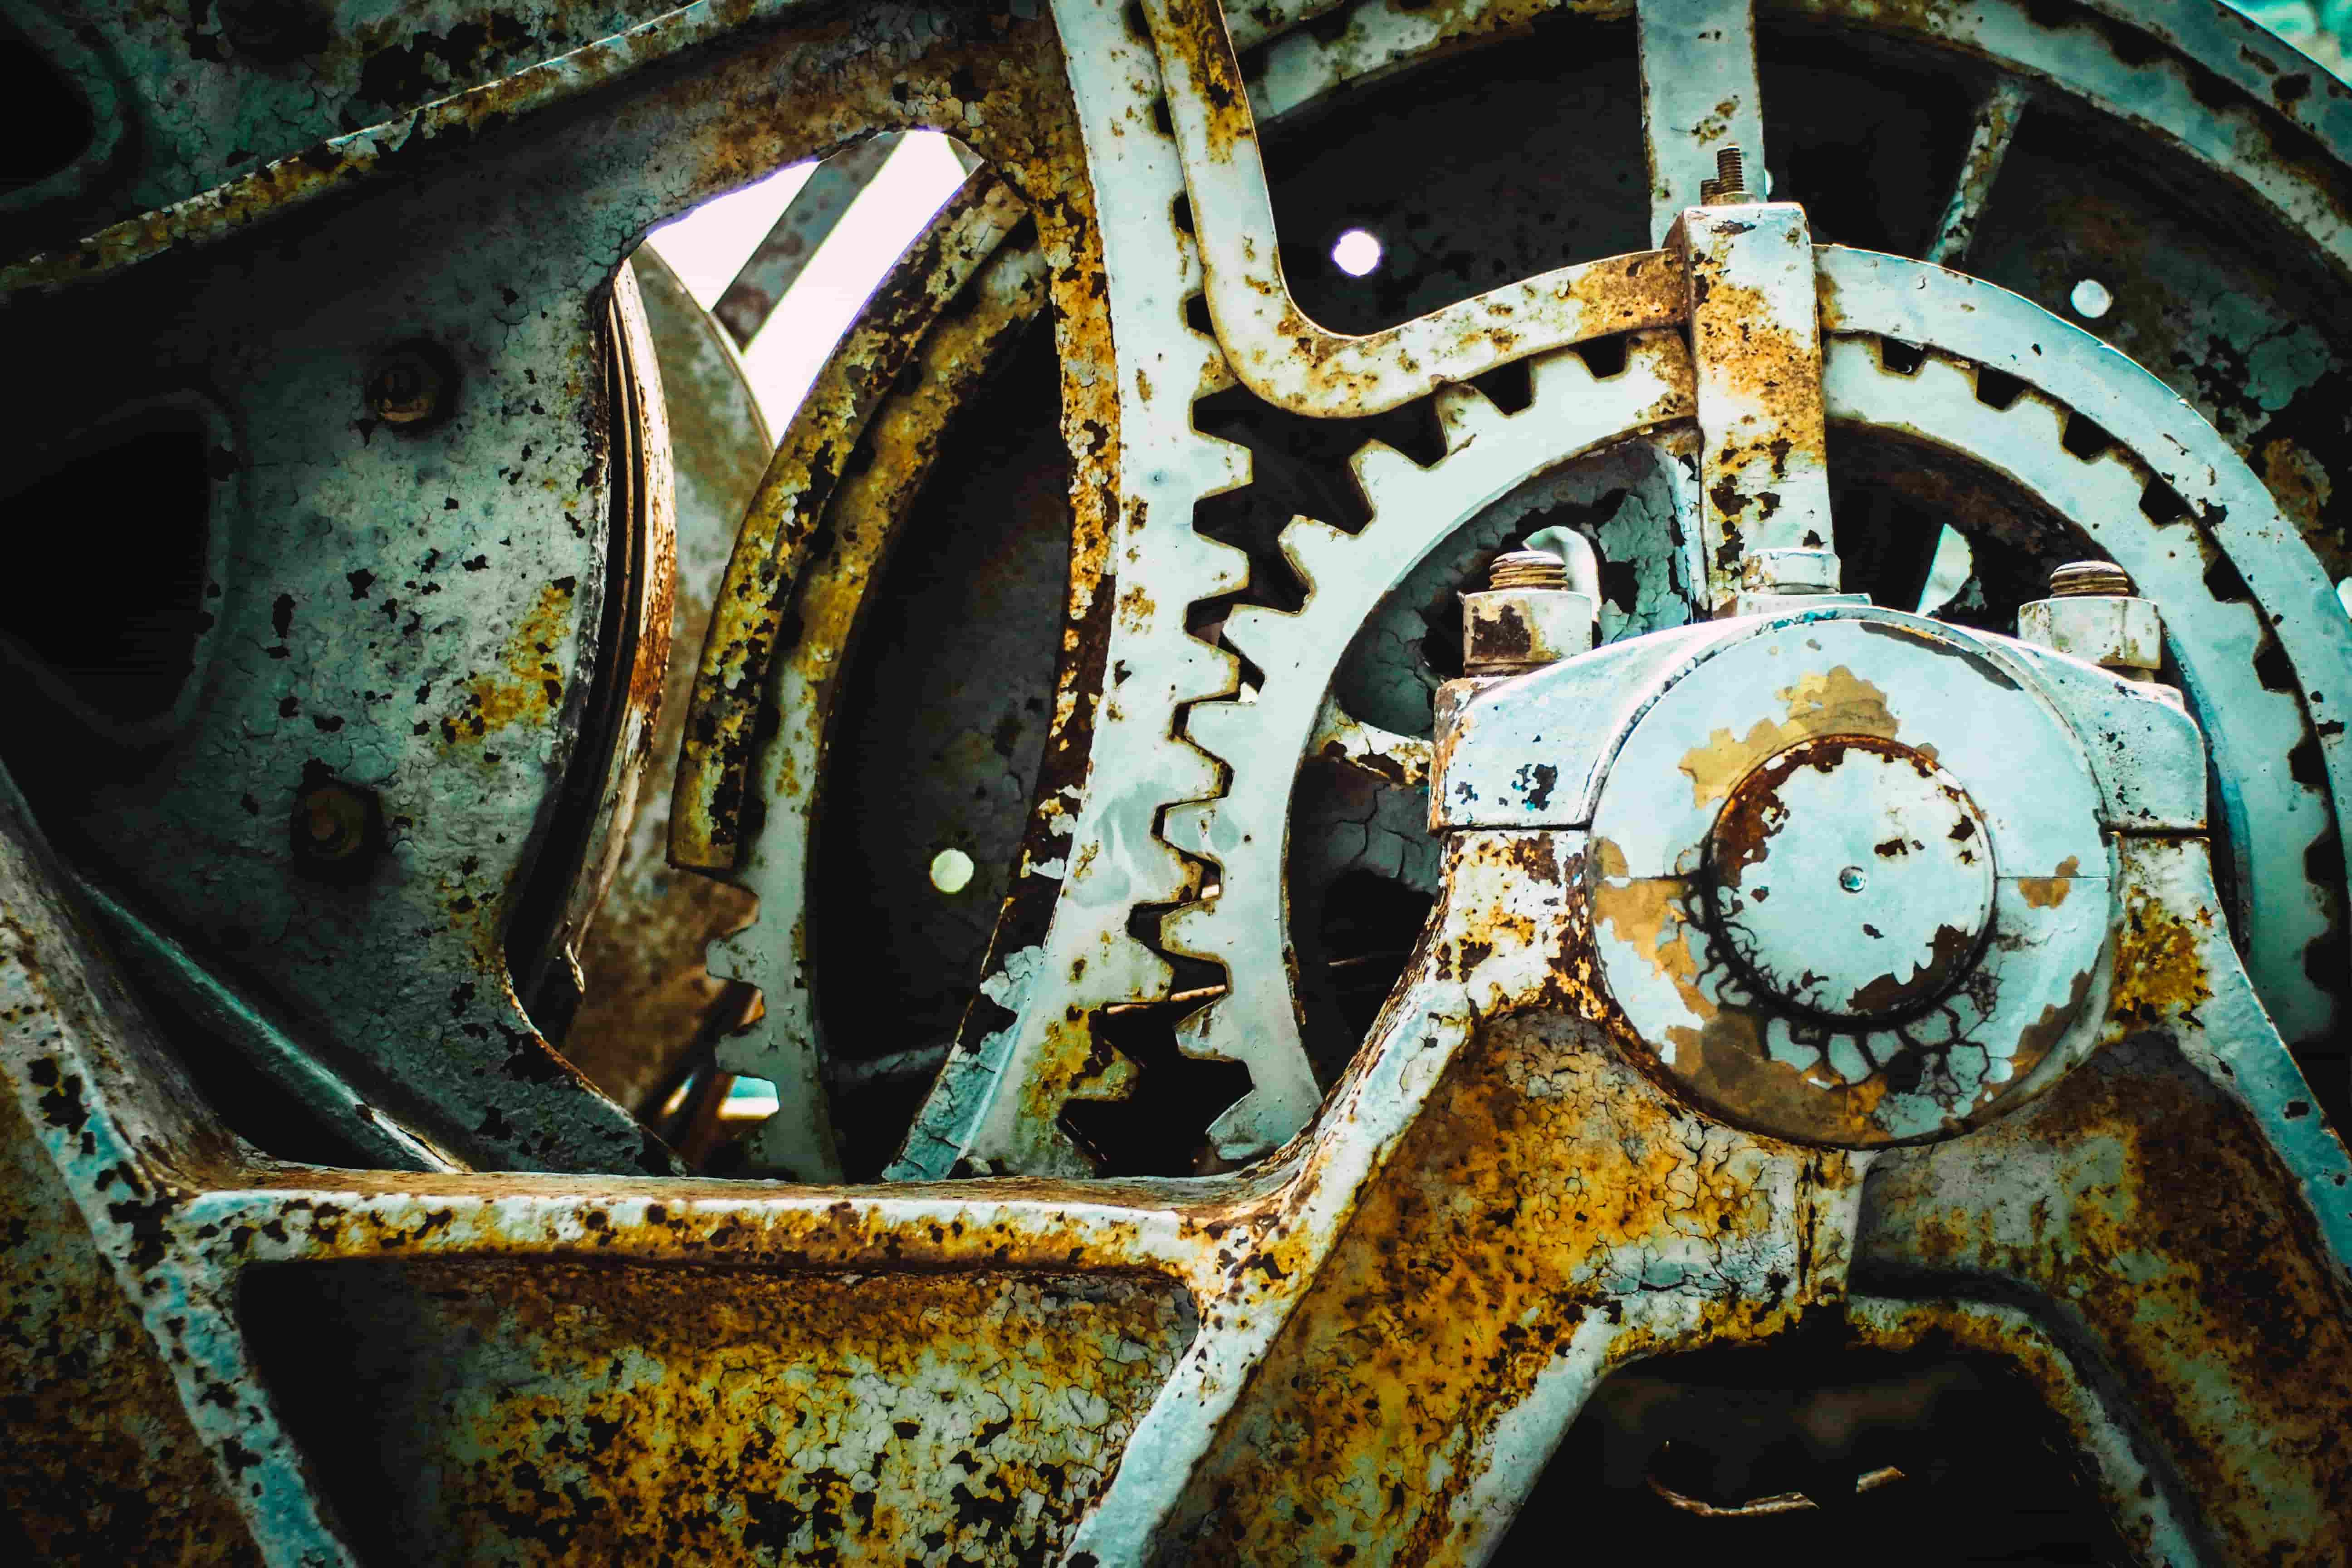 Keep the gears turning by automating regular processes in your business